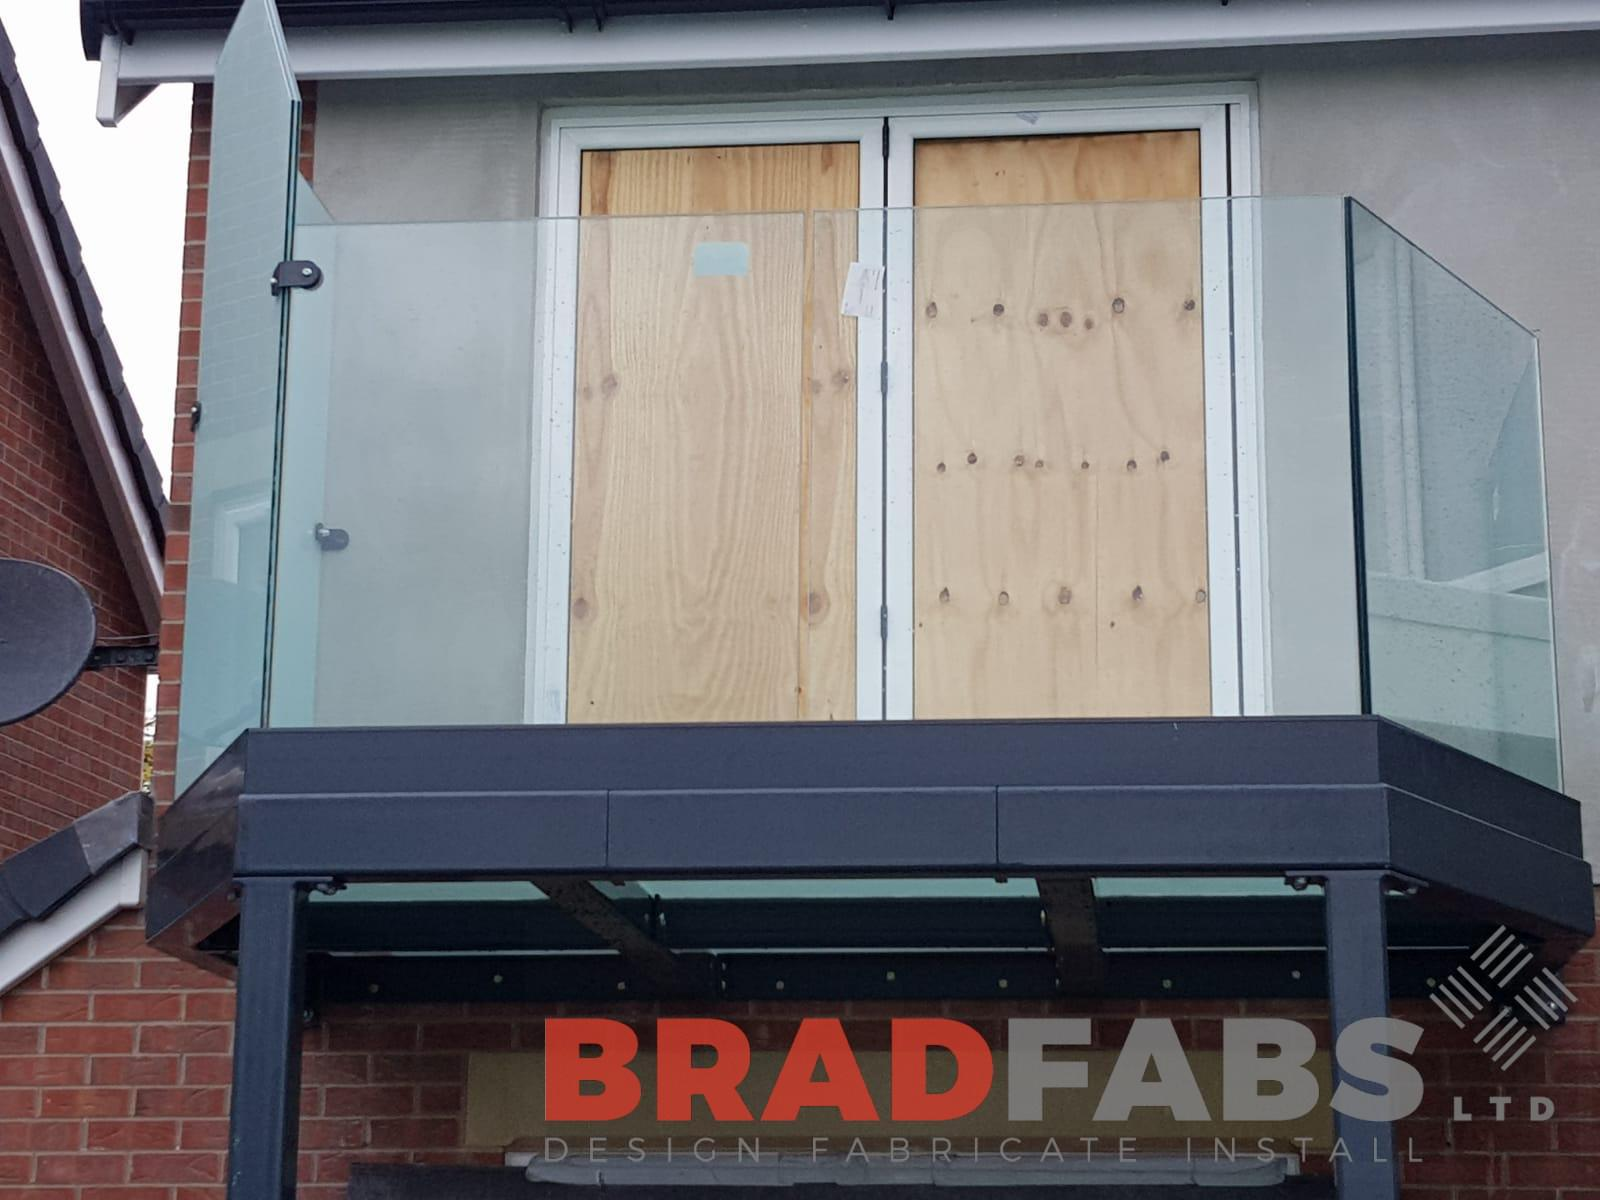 Infinity glass channel system balustrade by Bradfabs